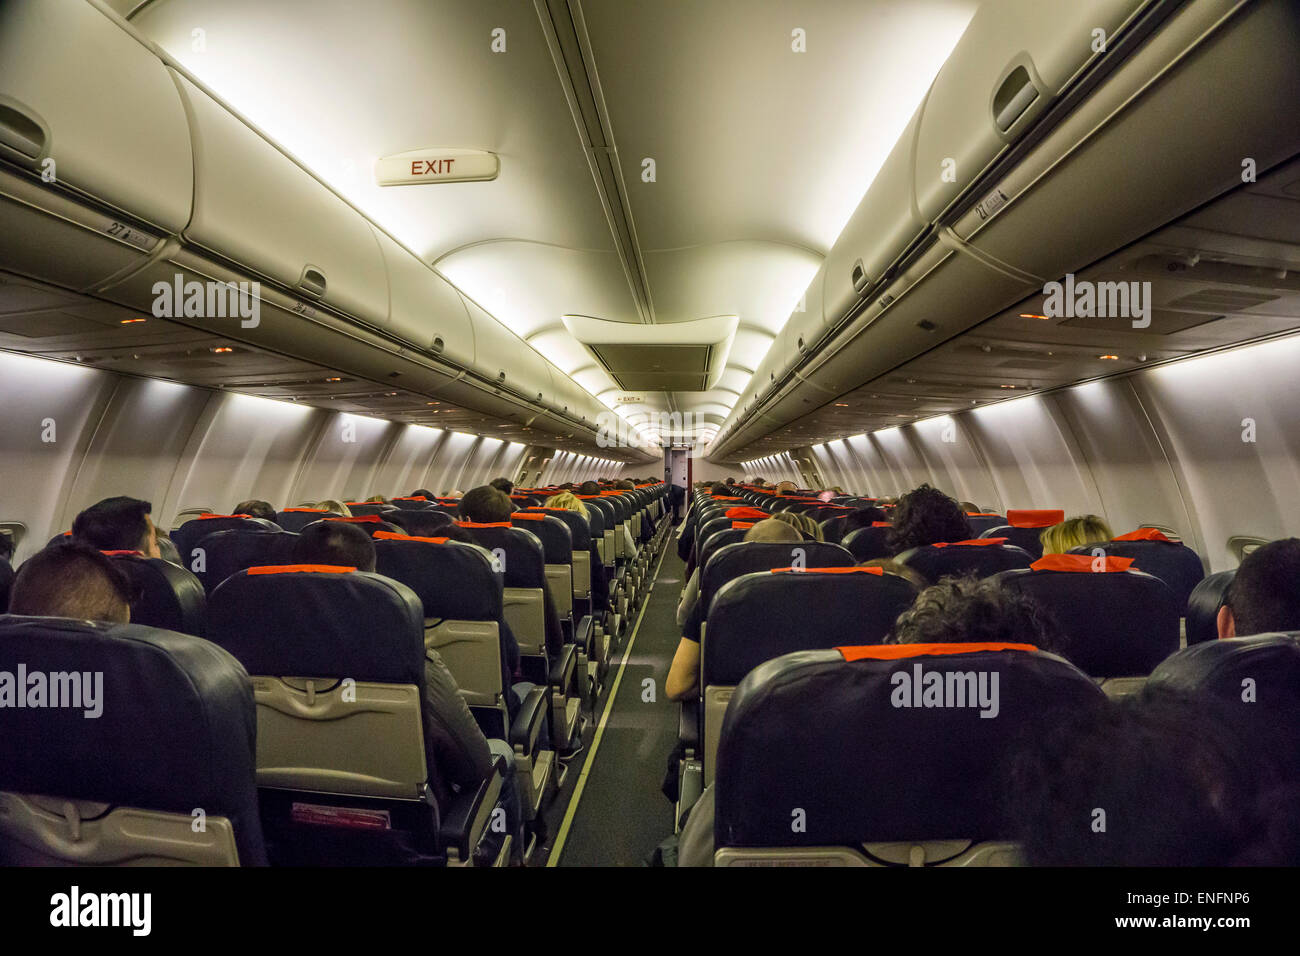 Commercial airliner interior economy class cabin - Stock Image